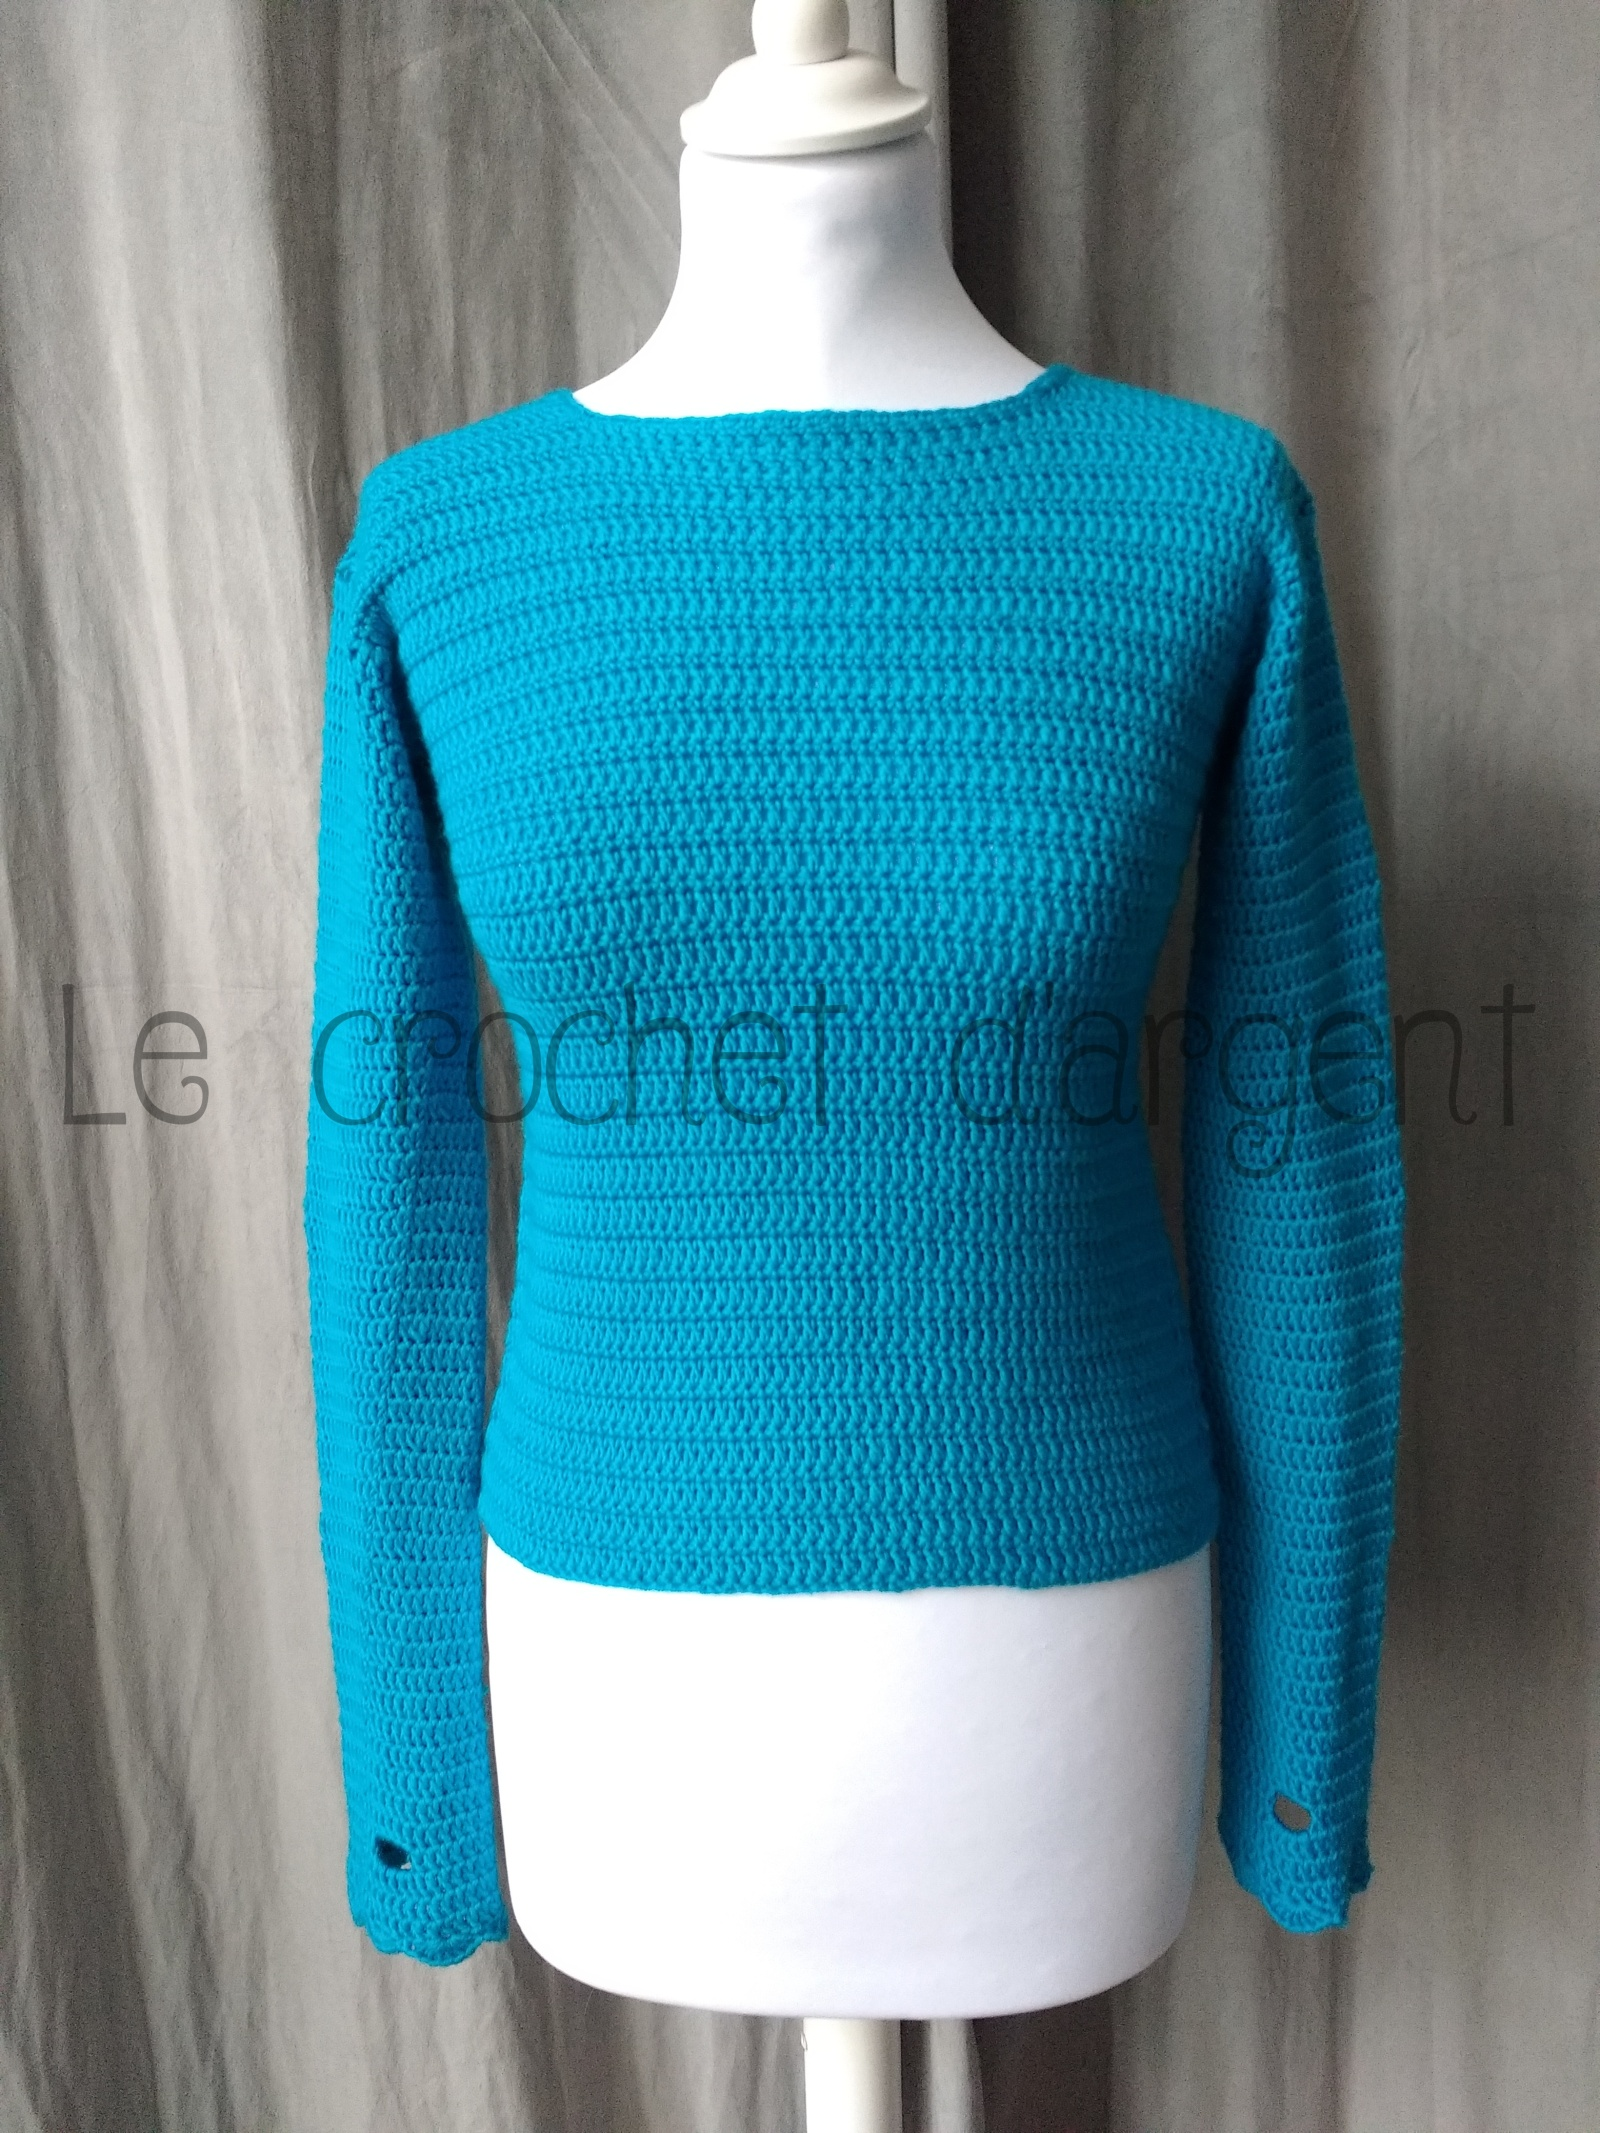 A turquoise blue crocheted sweater with mittens and free pattern